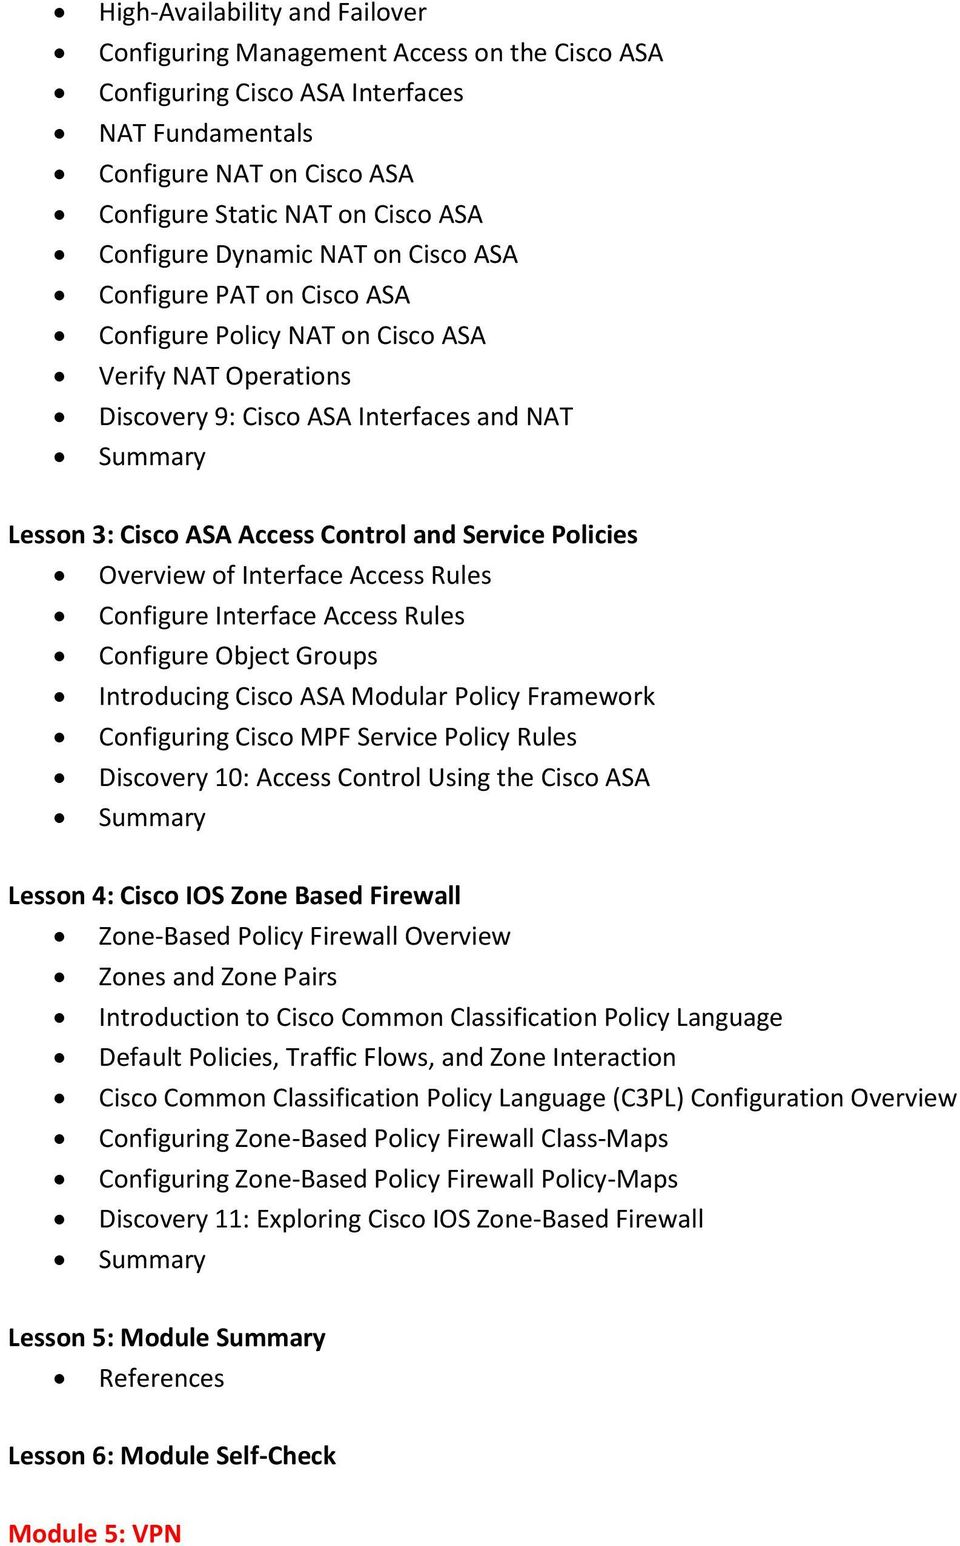 Policies Overview of Interface Access Rules Configure Interface Access Rules Configure Object Groups Introducing Cisco ASA Modular Policy Framework Configuring Cisco MPF Service Policy Rules